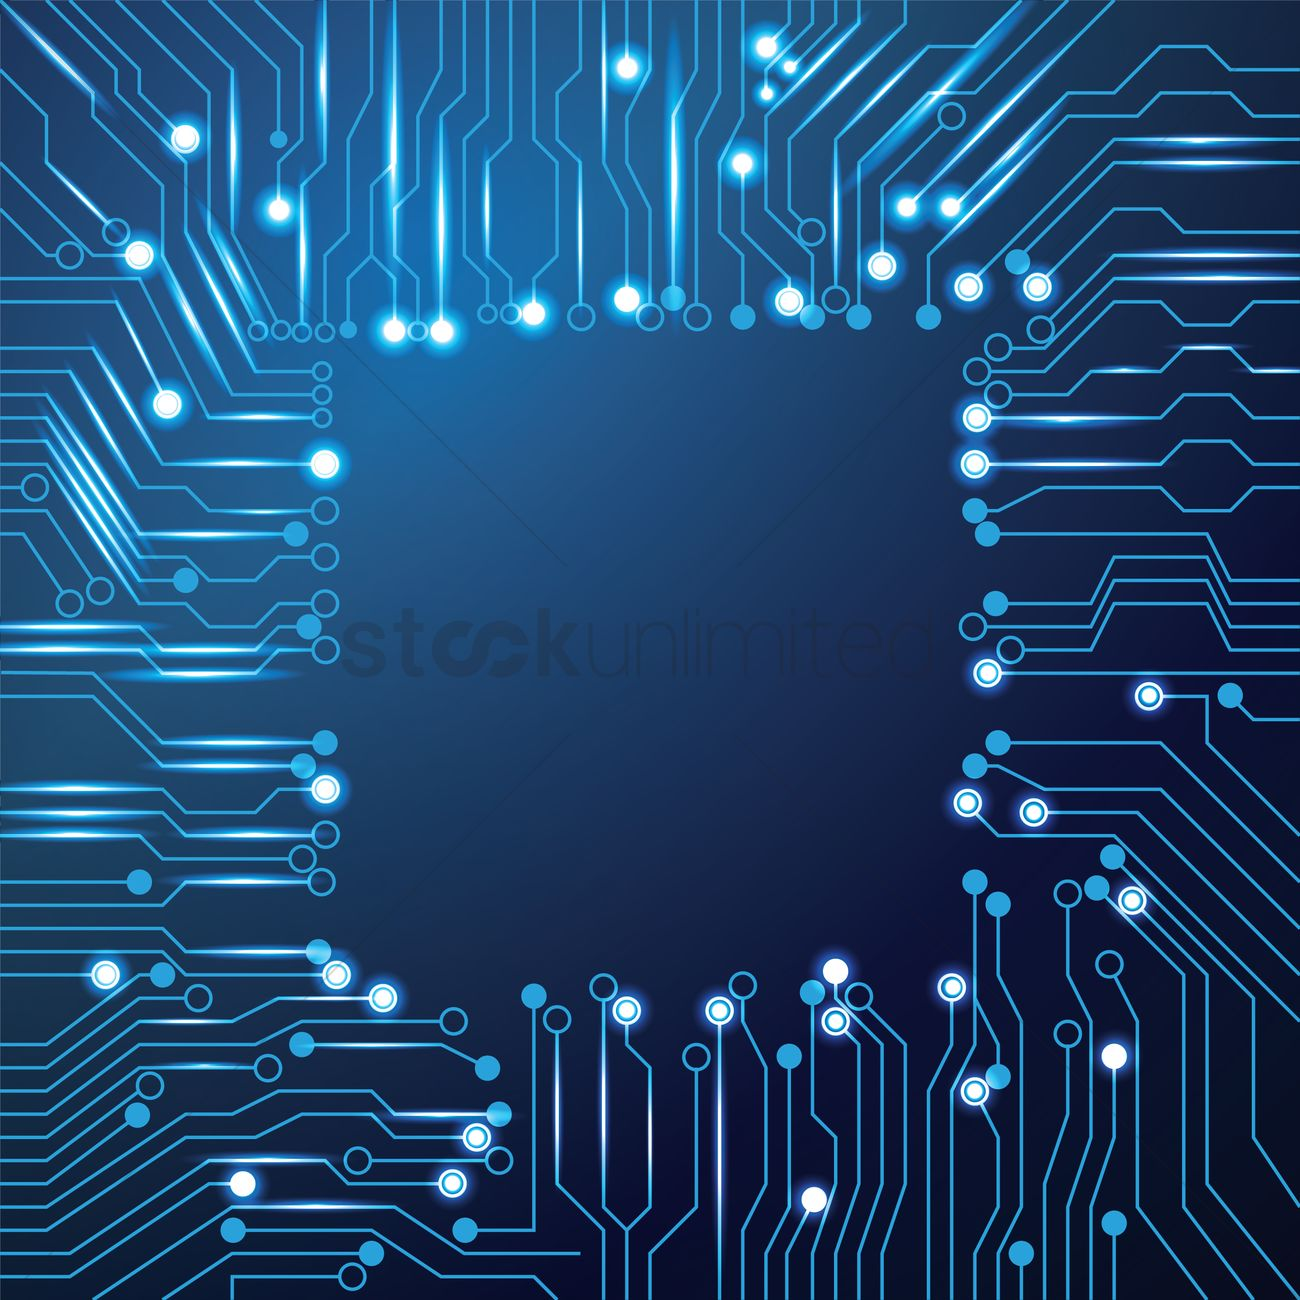 Circuit Pictures Auto Electrical Wiring Diagram Fileintegrated Circuits 4jpg Wikimedia Commons Chip Design On Board Wallpaper Vector Image